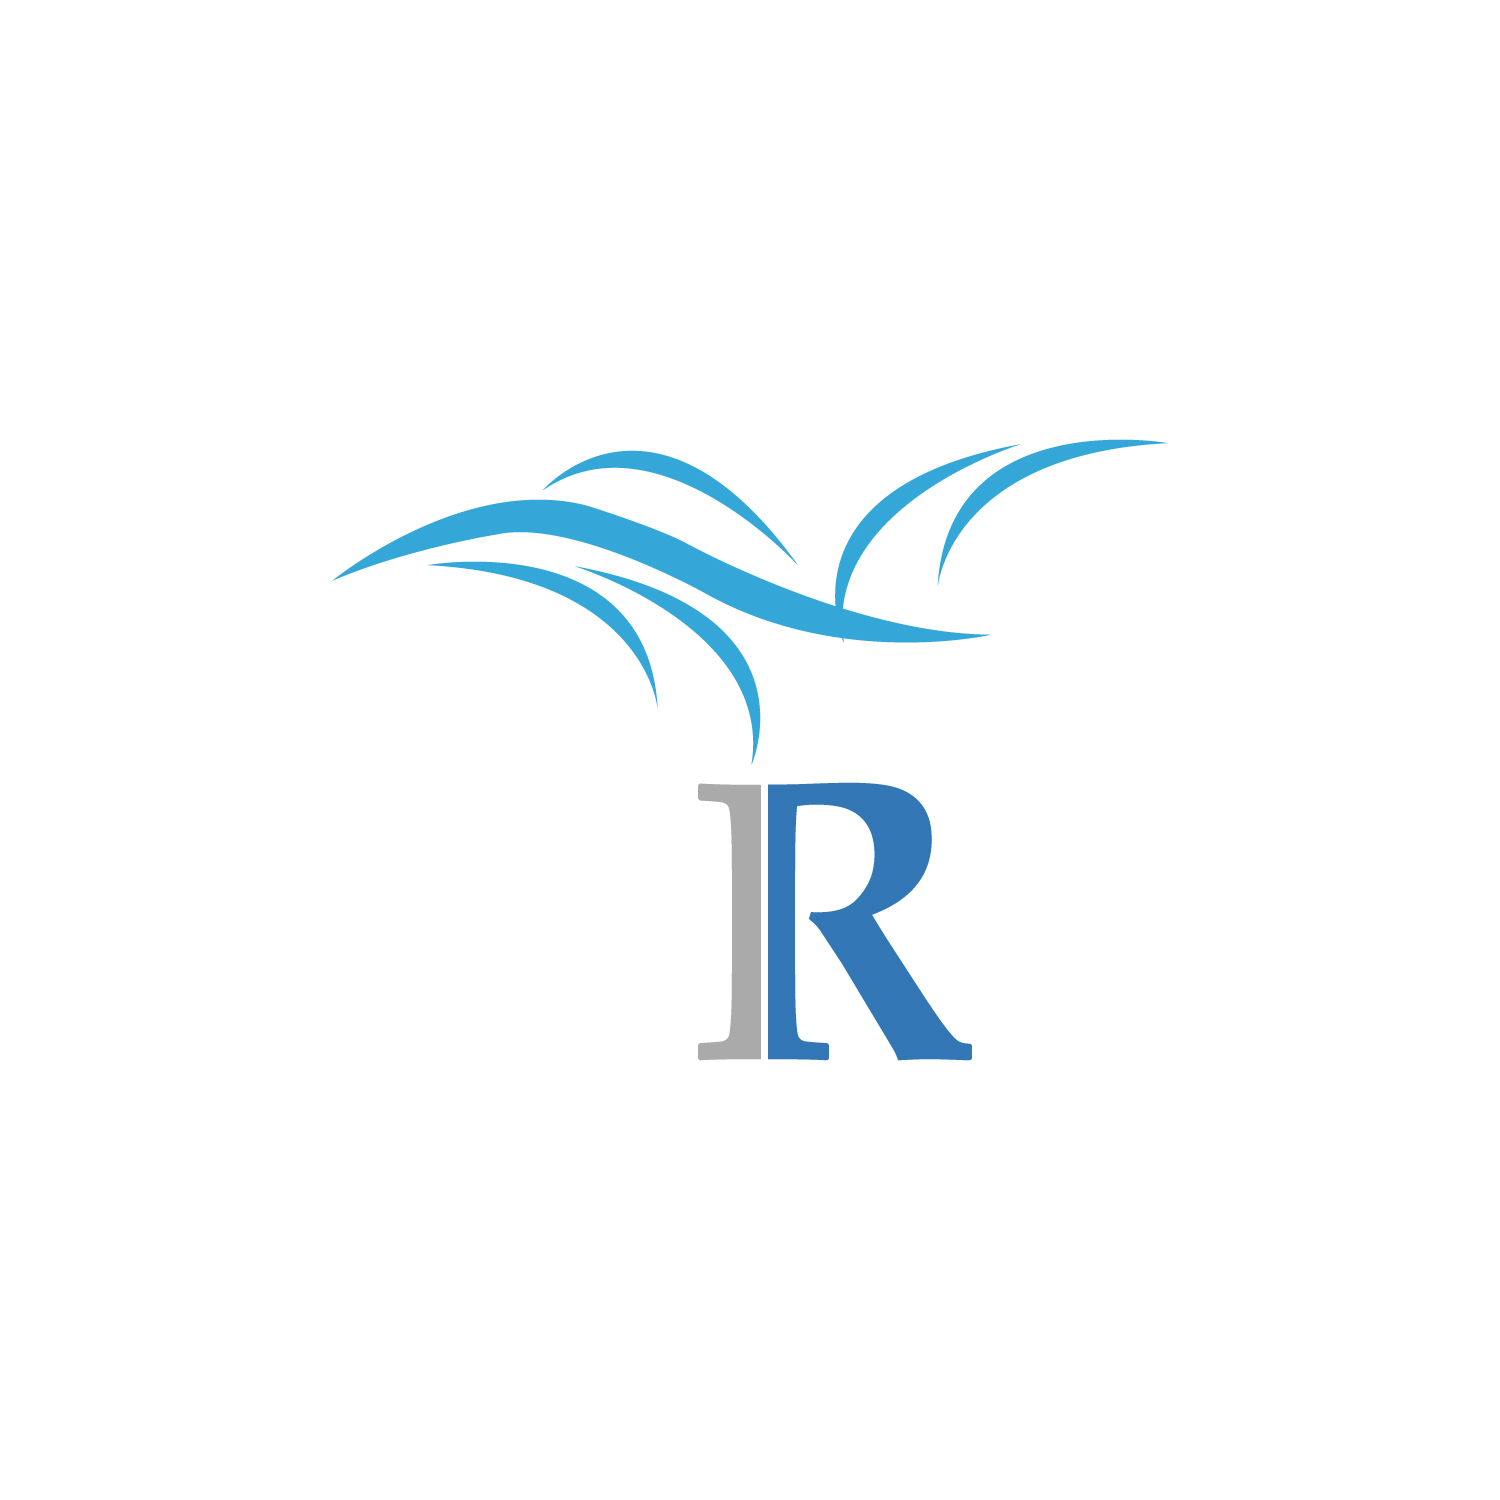 Elegant Serious Logo Design For Symbol Of Wind R By Shahrukh 5